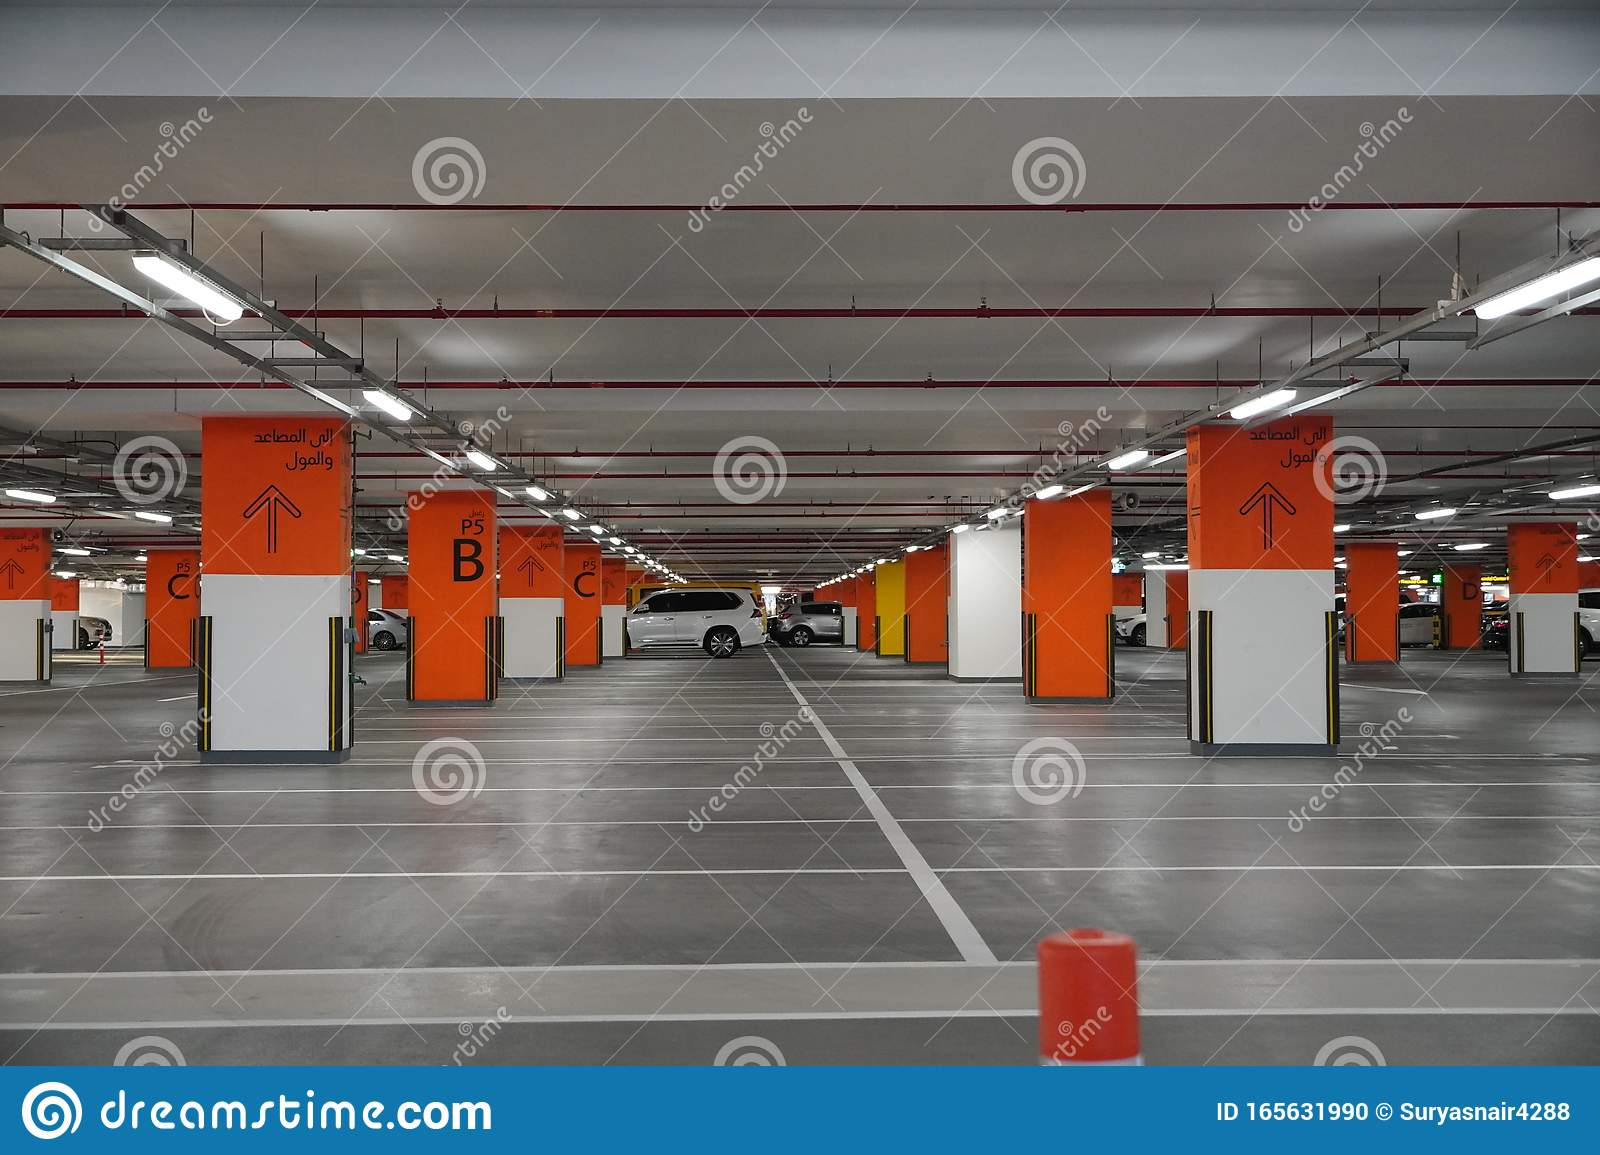 Dubai Uae December 2019 Underground Parking Which Is Almost Empty Empty Garage In Basement Of Office Building Reinforced Editorial Image Image Of Asphalt Night 165631990